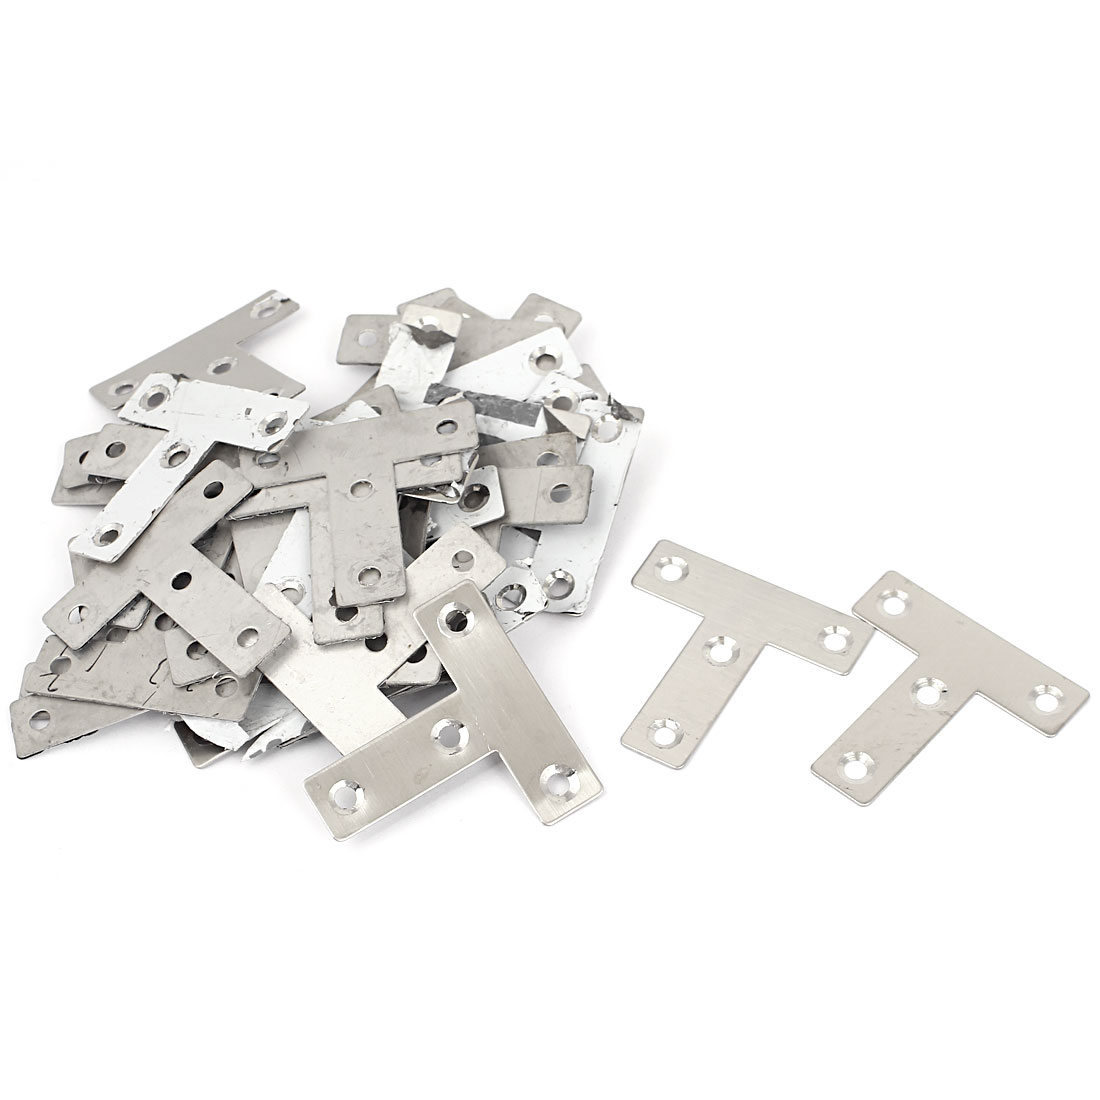 50 Pcs 50mmx50mm T Shaped Corner Brace Flat Repair Angle Plate Brackets